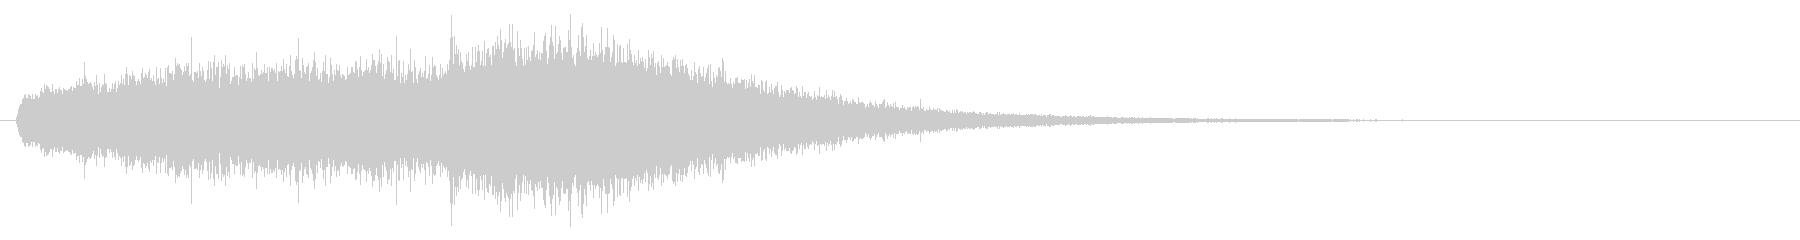 Sound of chanting or activating magic # 2's unreproduced waveform